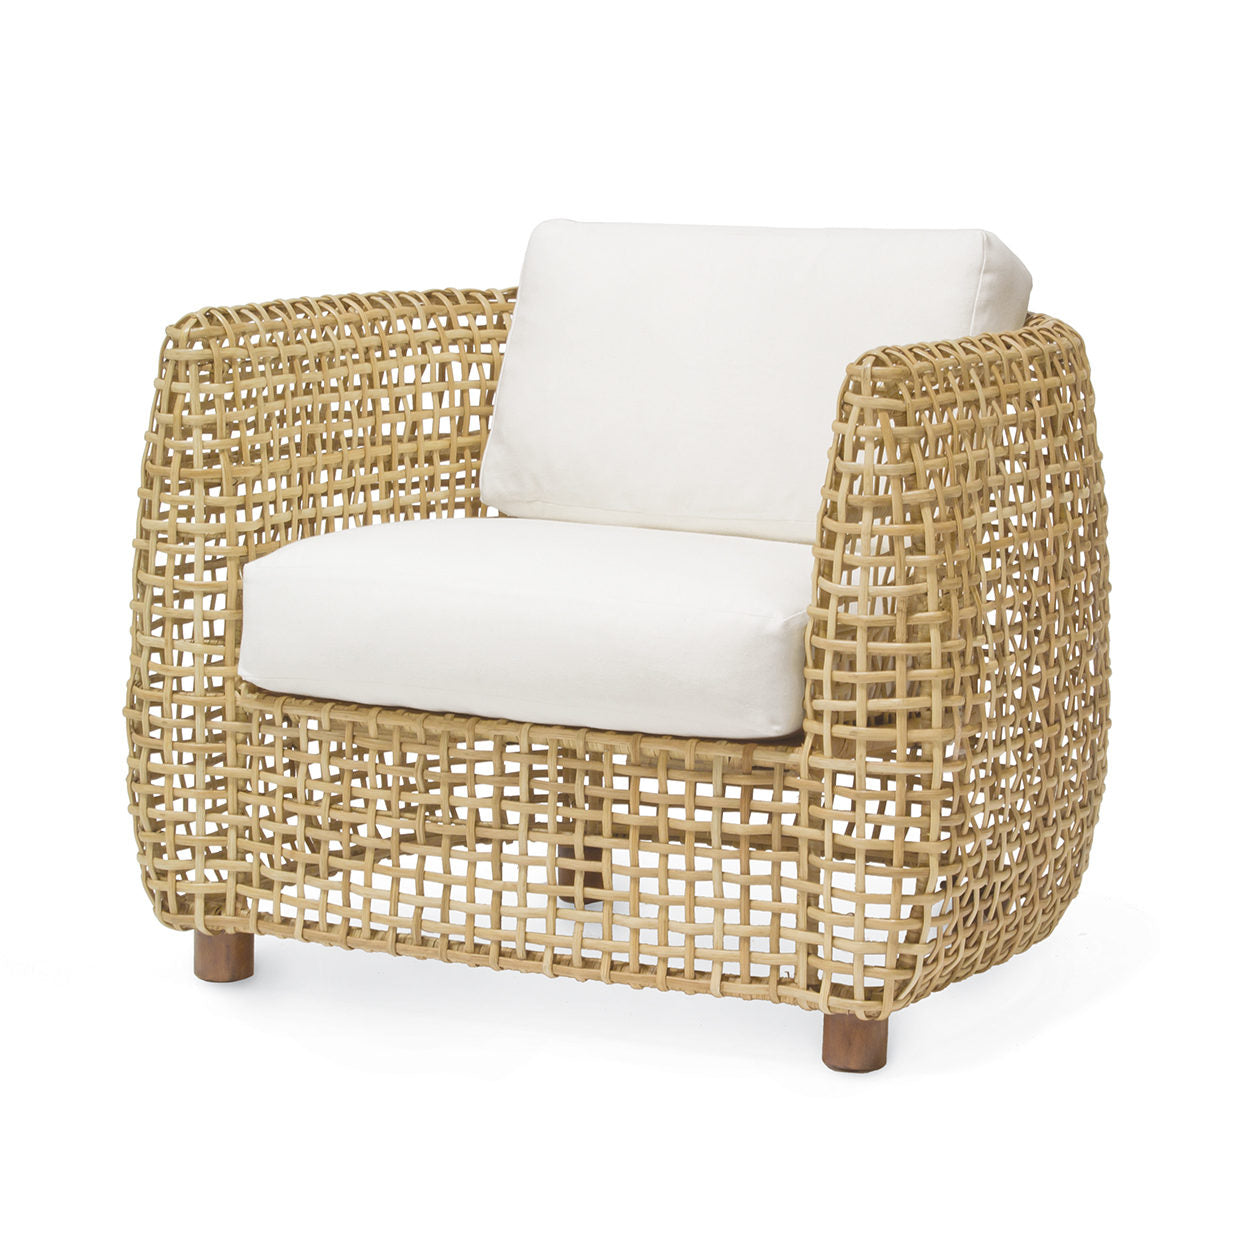 Luis Lounge Chair